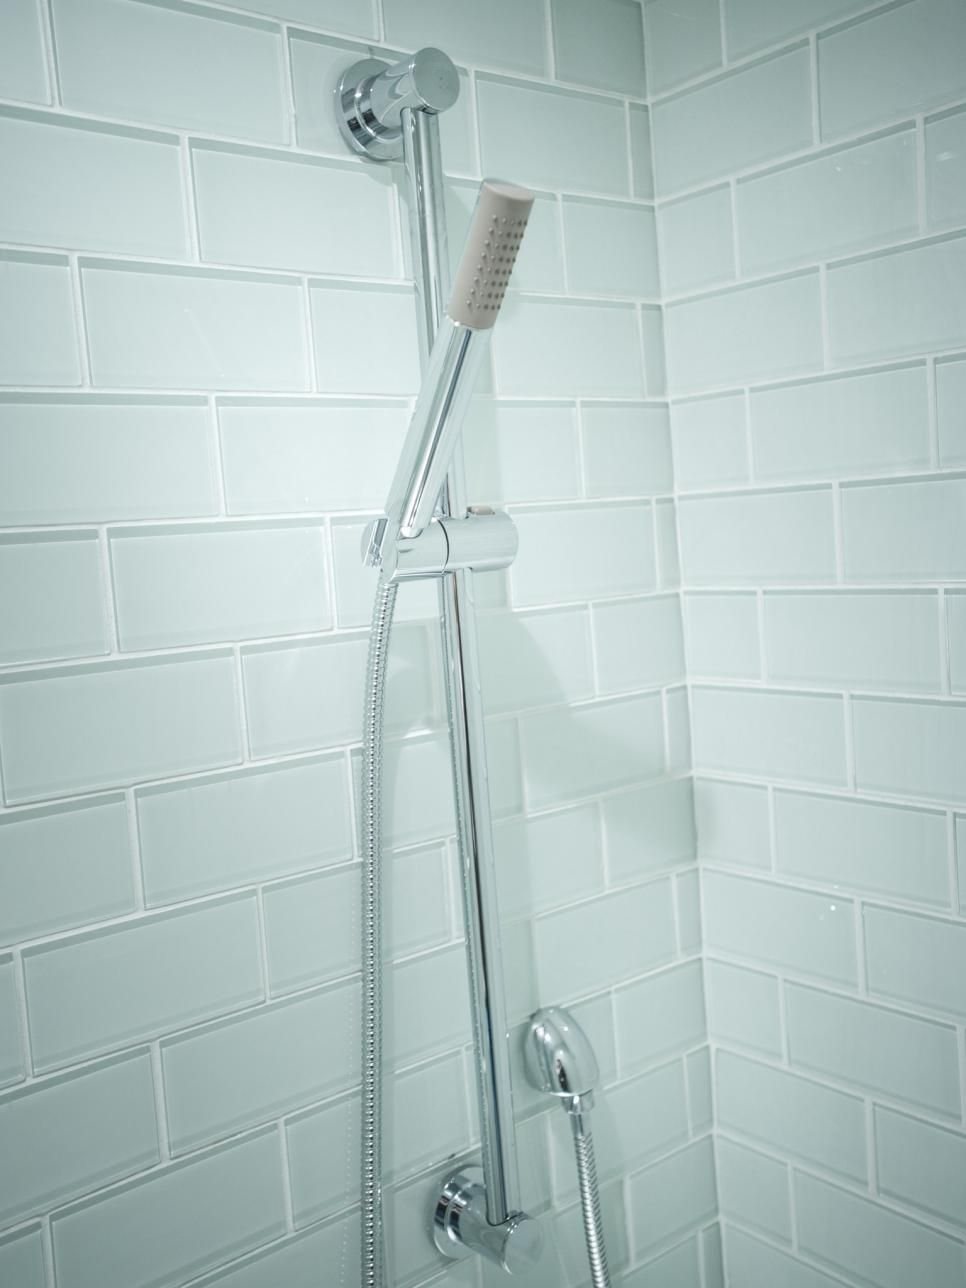 Basement Bathroom Pictures From HGTV Smart Home 2014 | Shower head ...